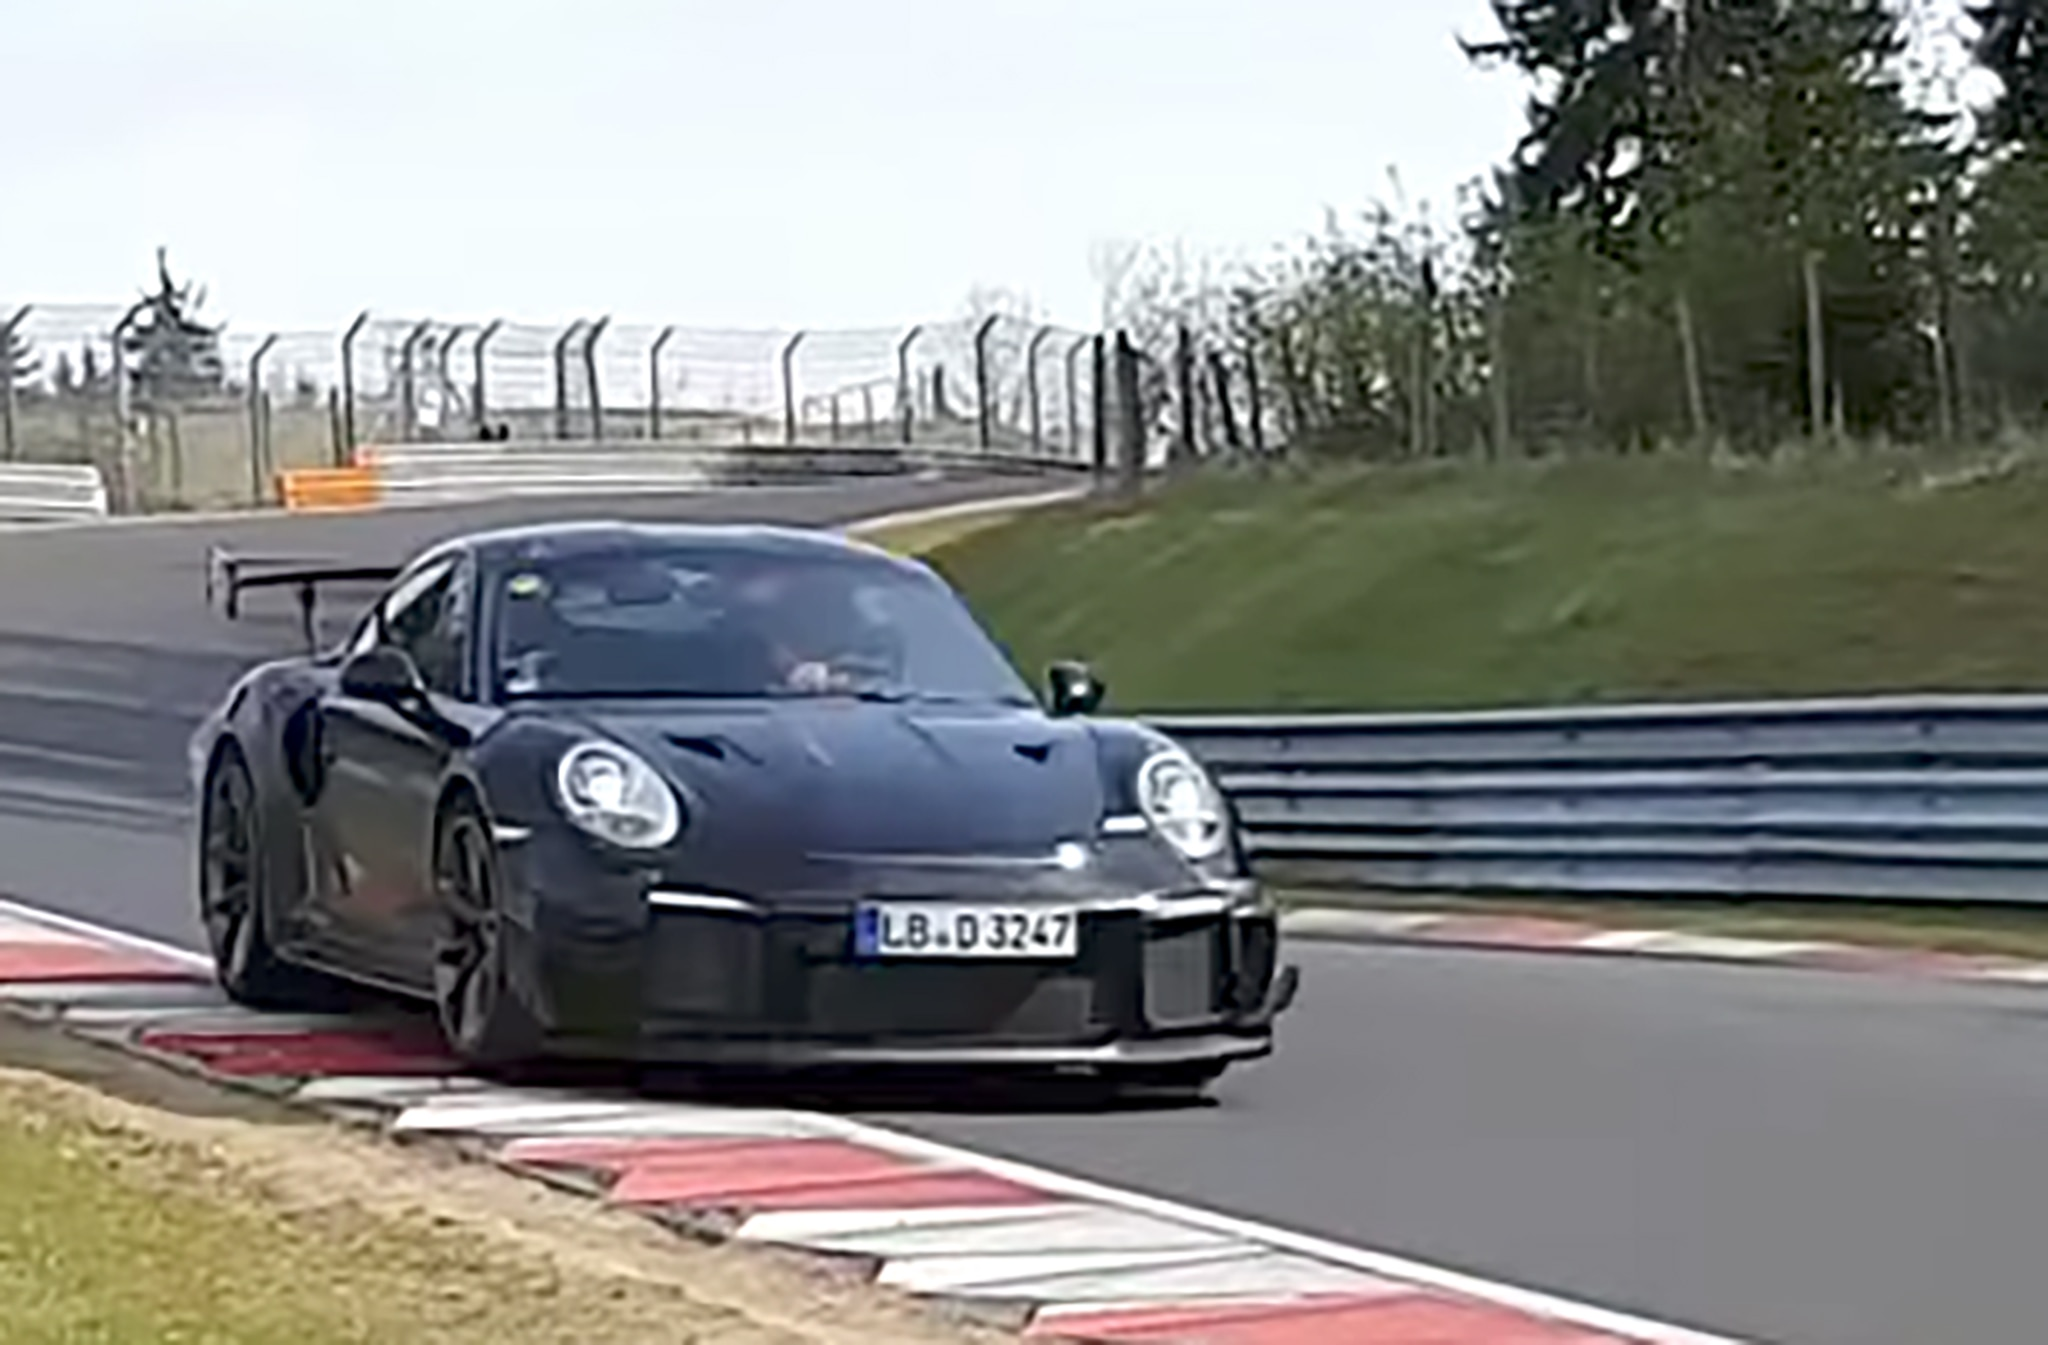 Porsche-911-GT2-RS Interesting Porsche 911 Gt2 and Gt3 Cars Trend